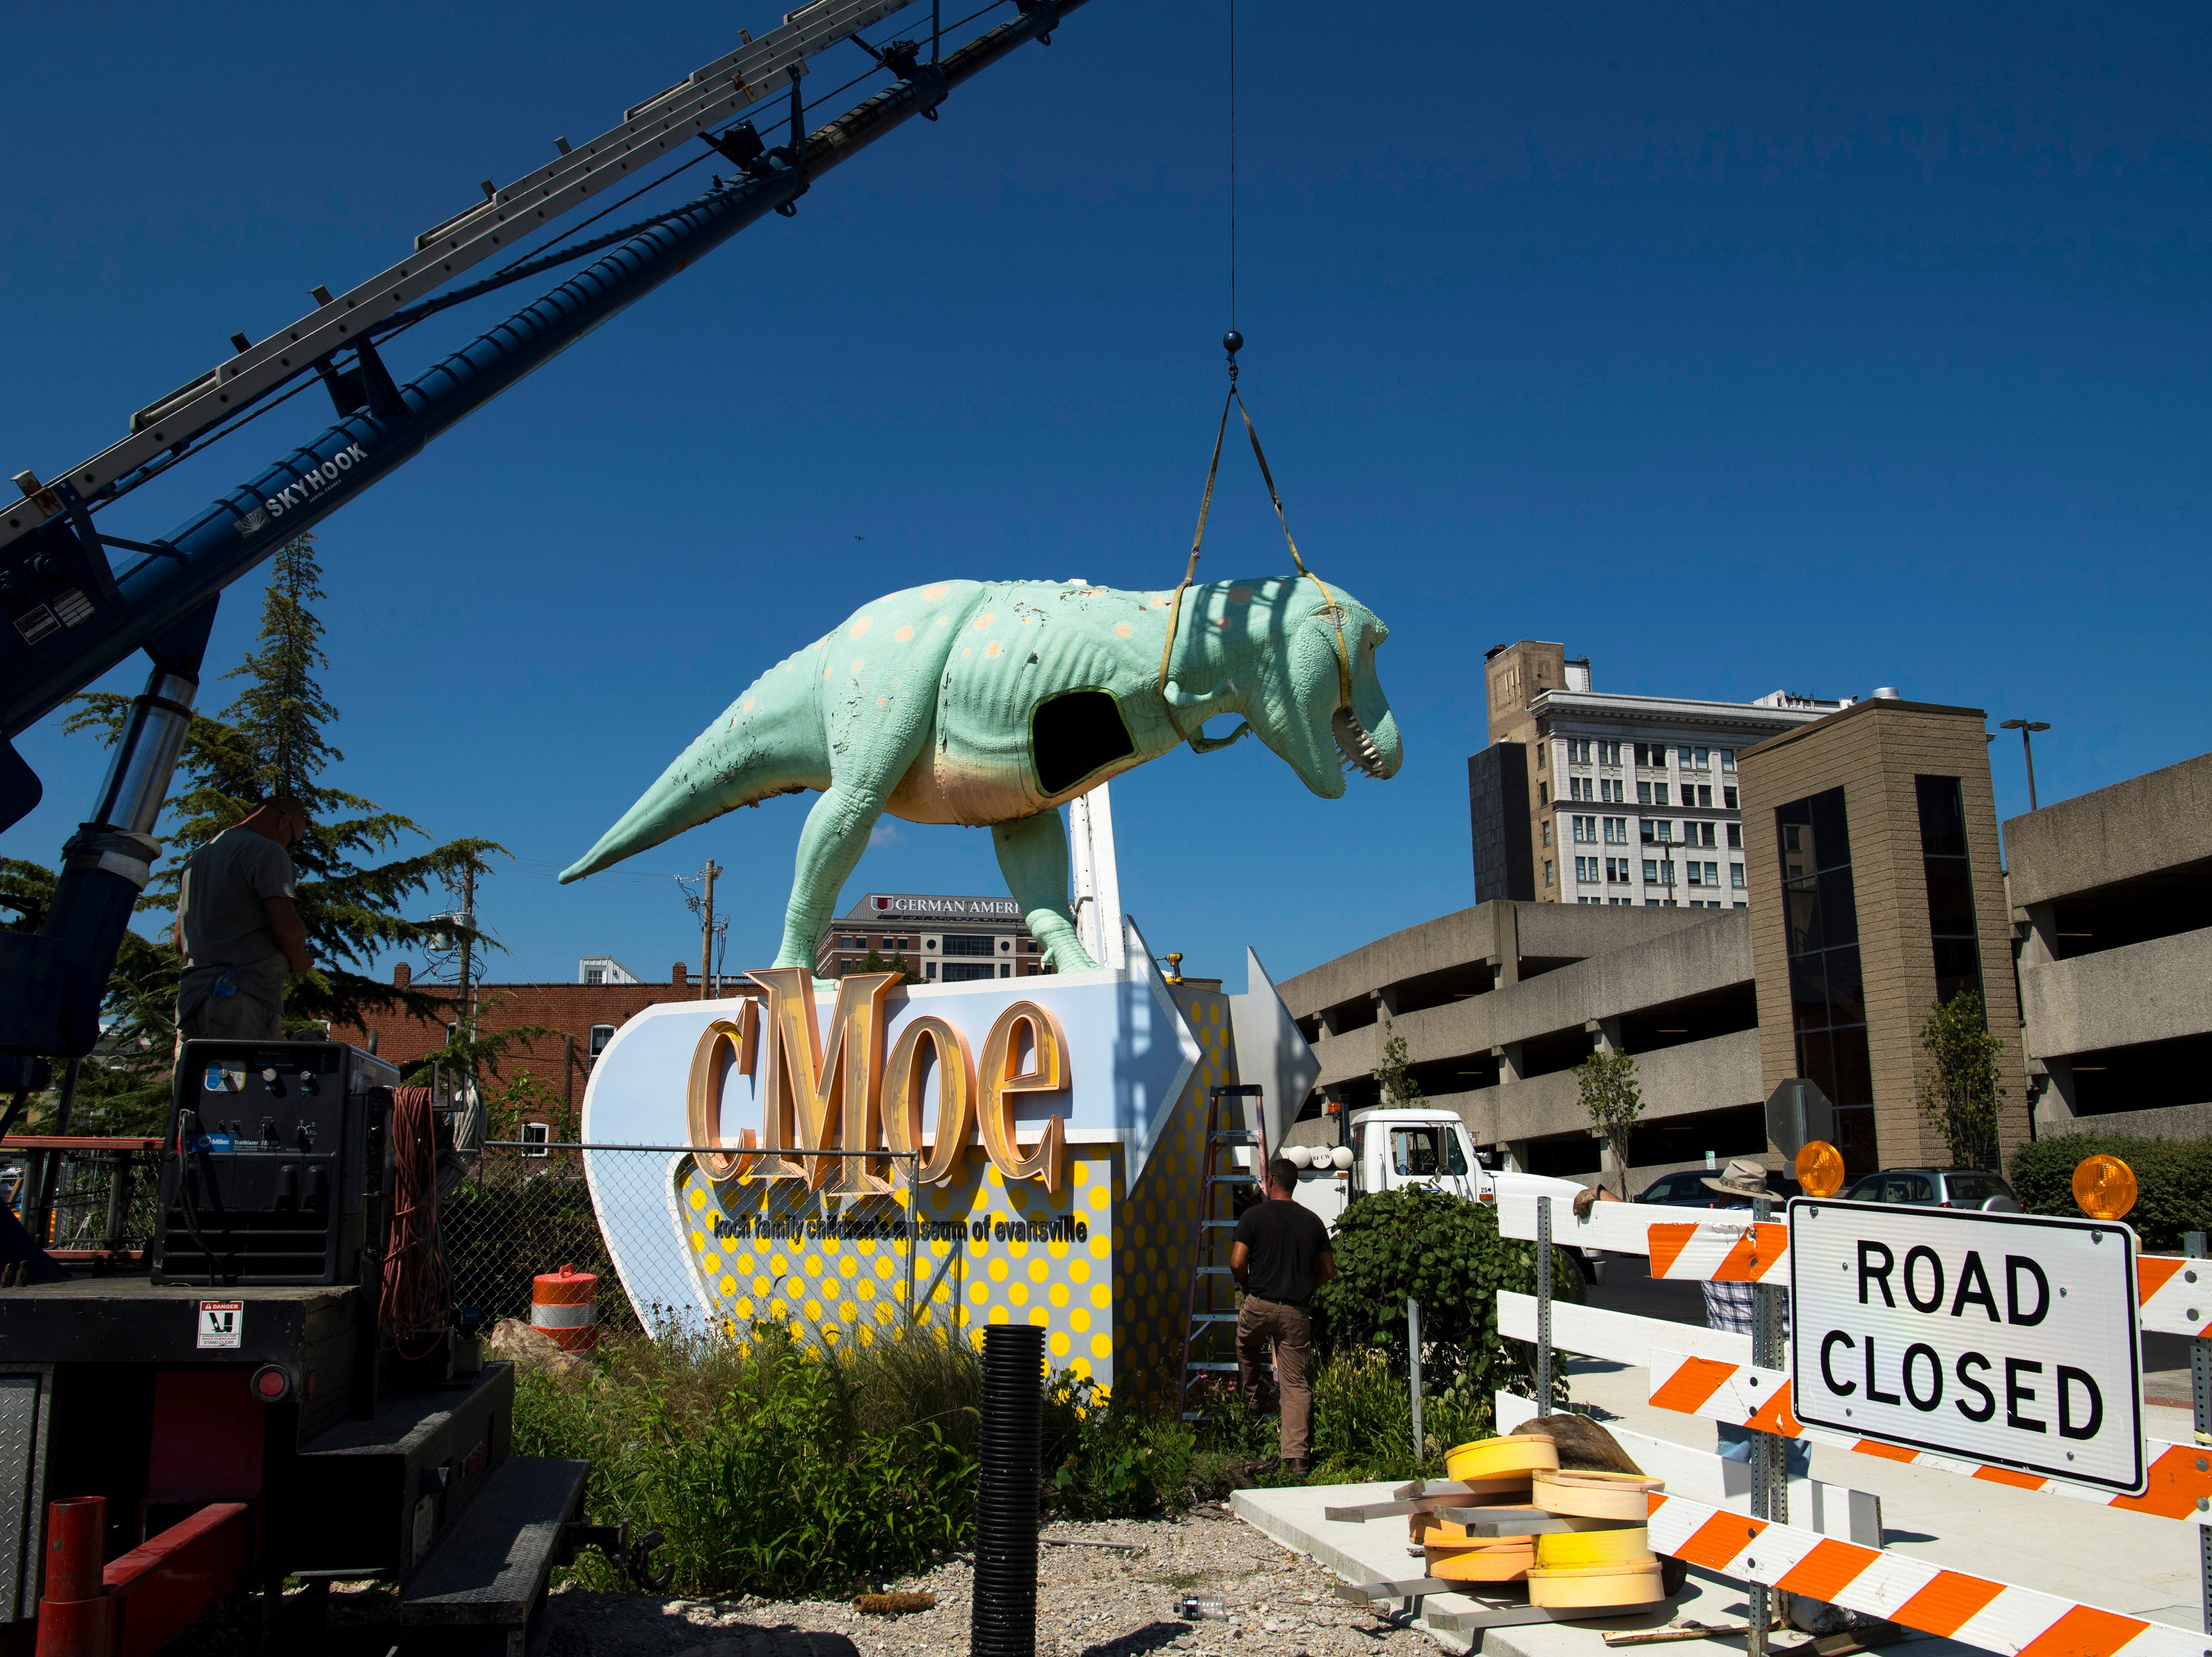 Millie spends her last minutes perched across from the Koch Family Children's Museum of Evansville Wednesday morning. She was later disassembled and transported to Custom Sign in Newburgh, Ind., for restoration. The new construction at her corner of Locust and Fifth streets is forcing her to find a new place to call home.